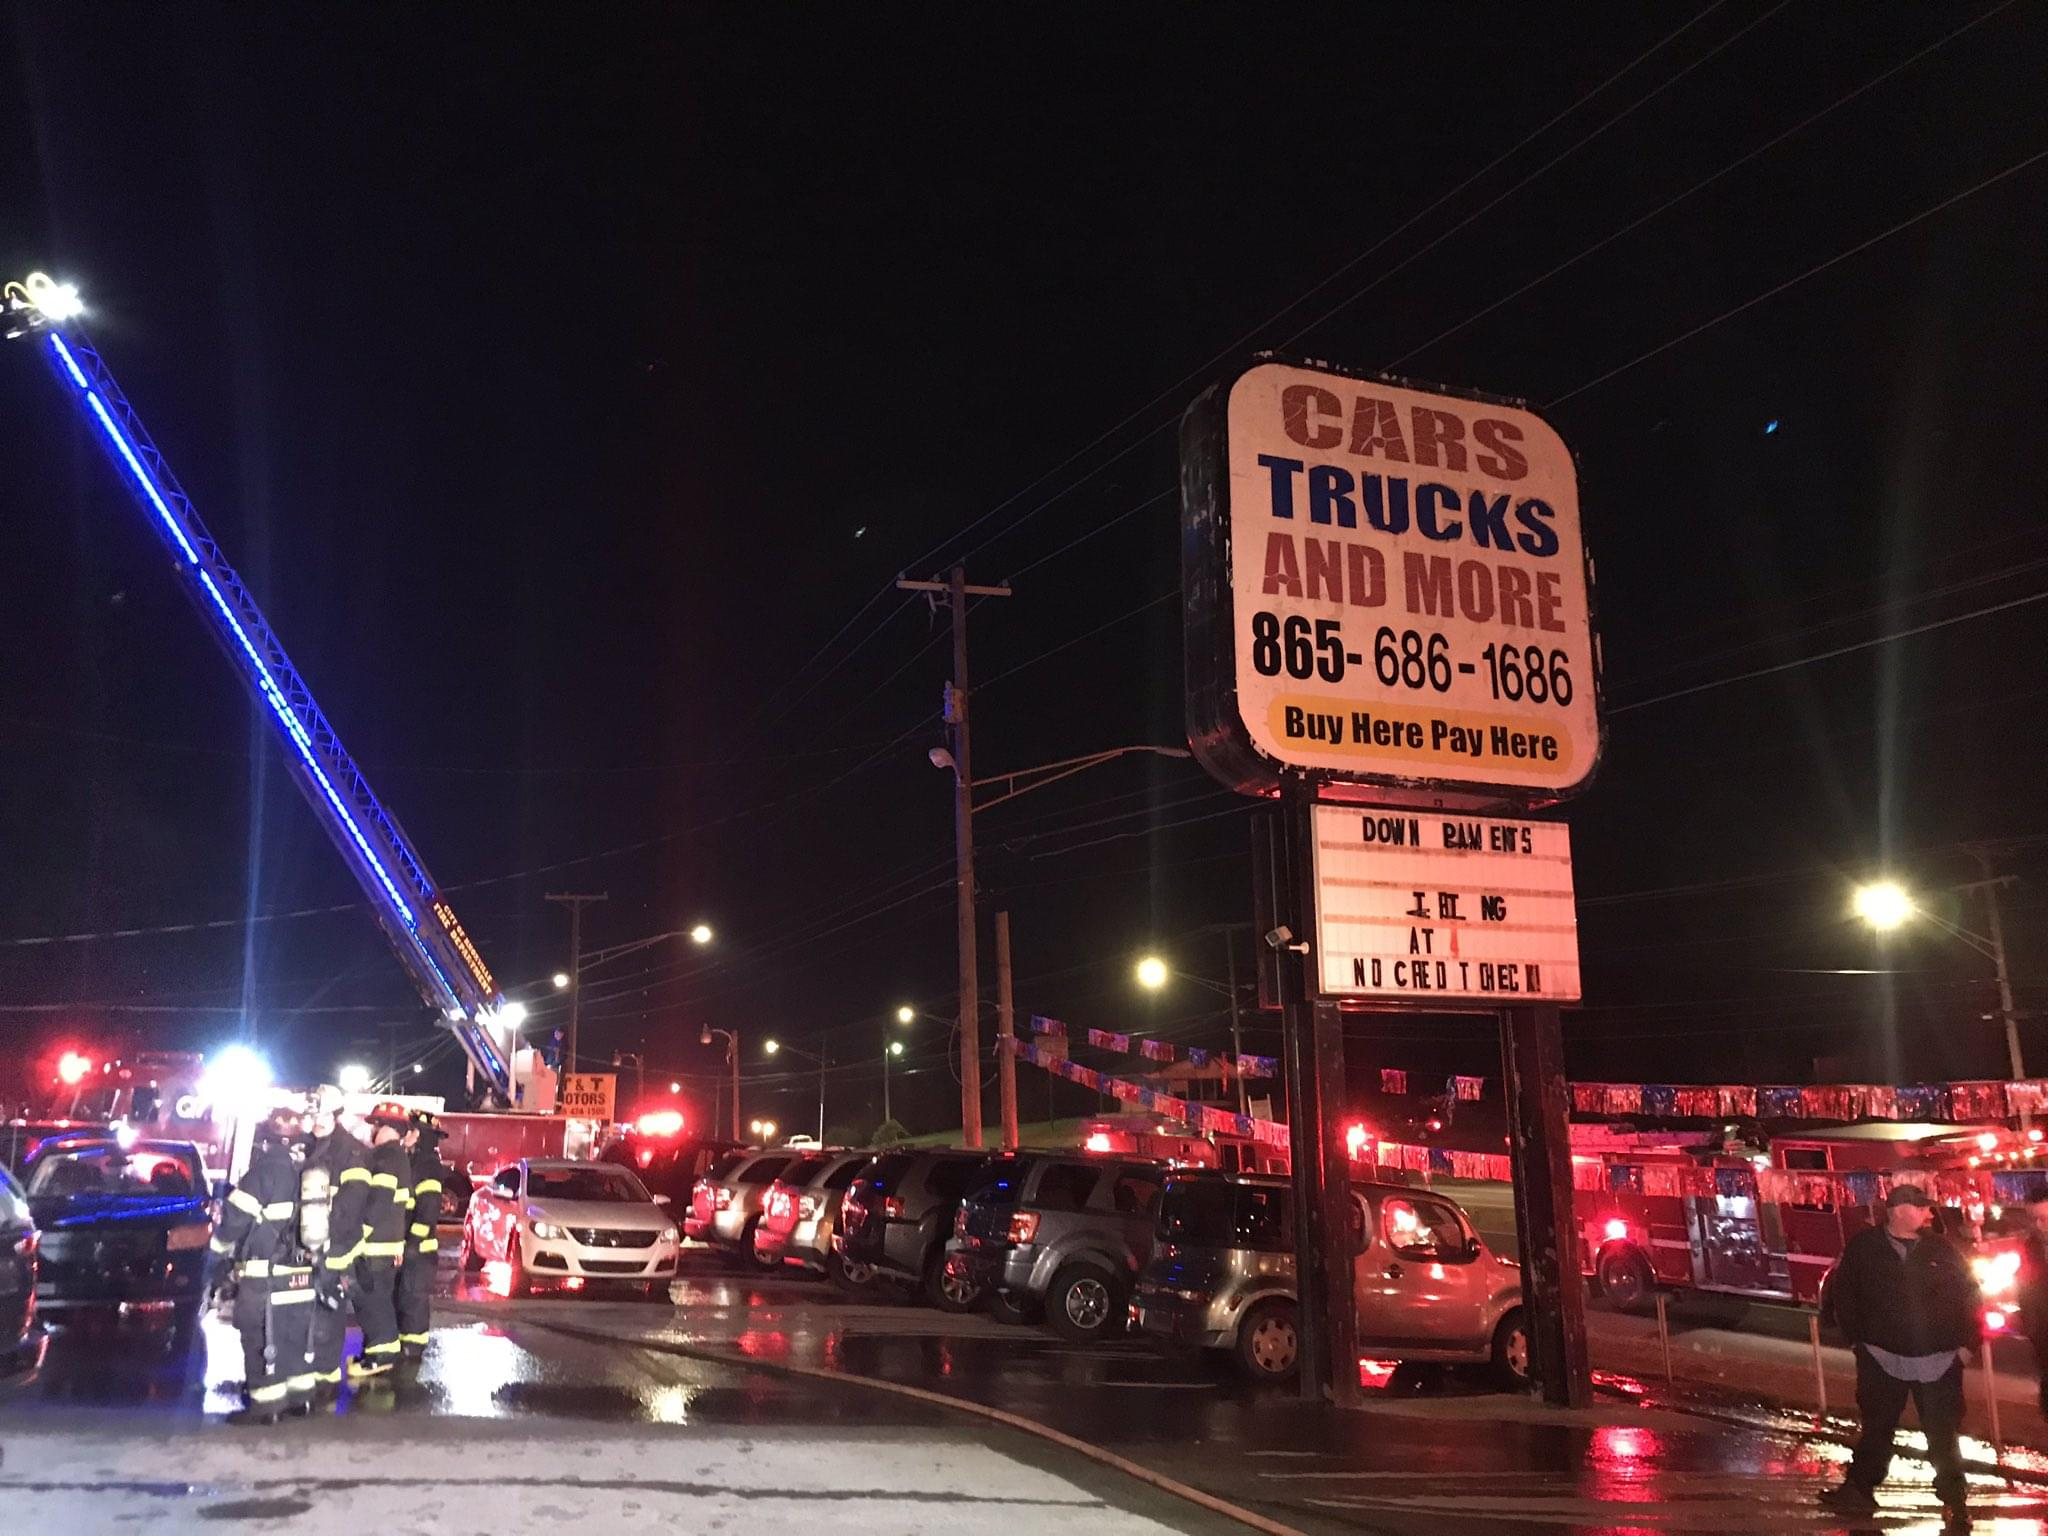 Knoxville Autoshop a Complete Loss in Fire